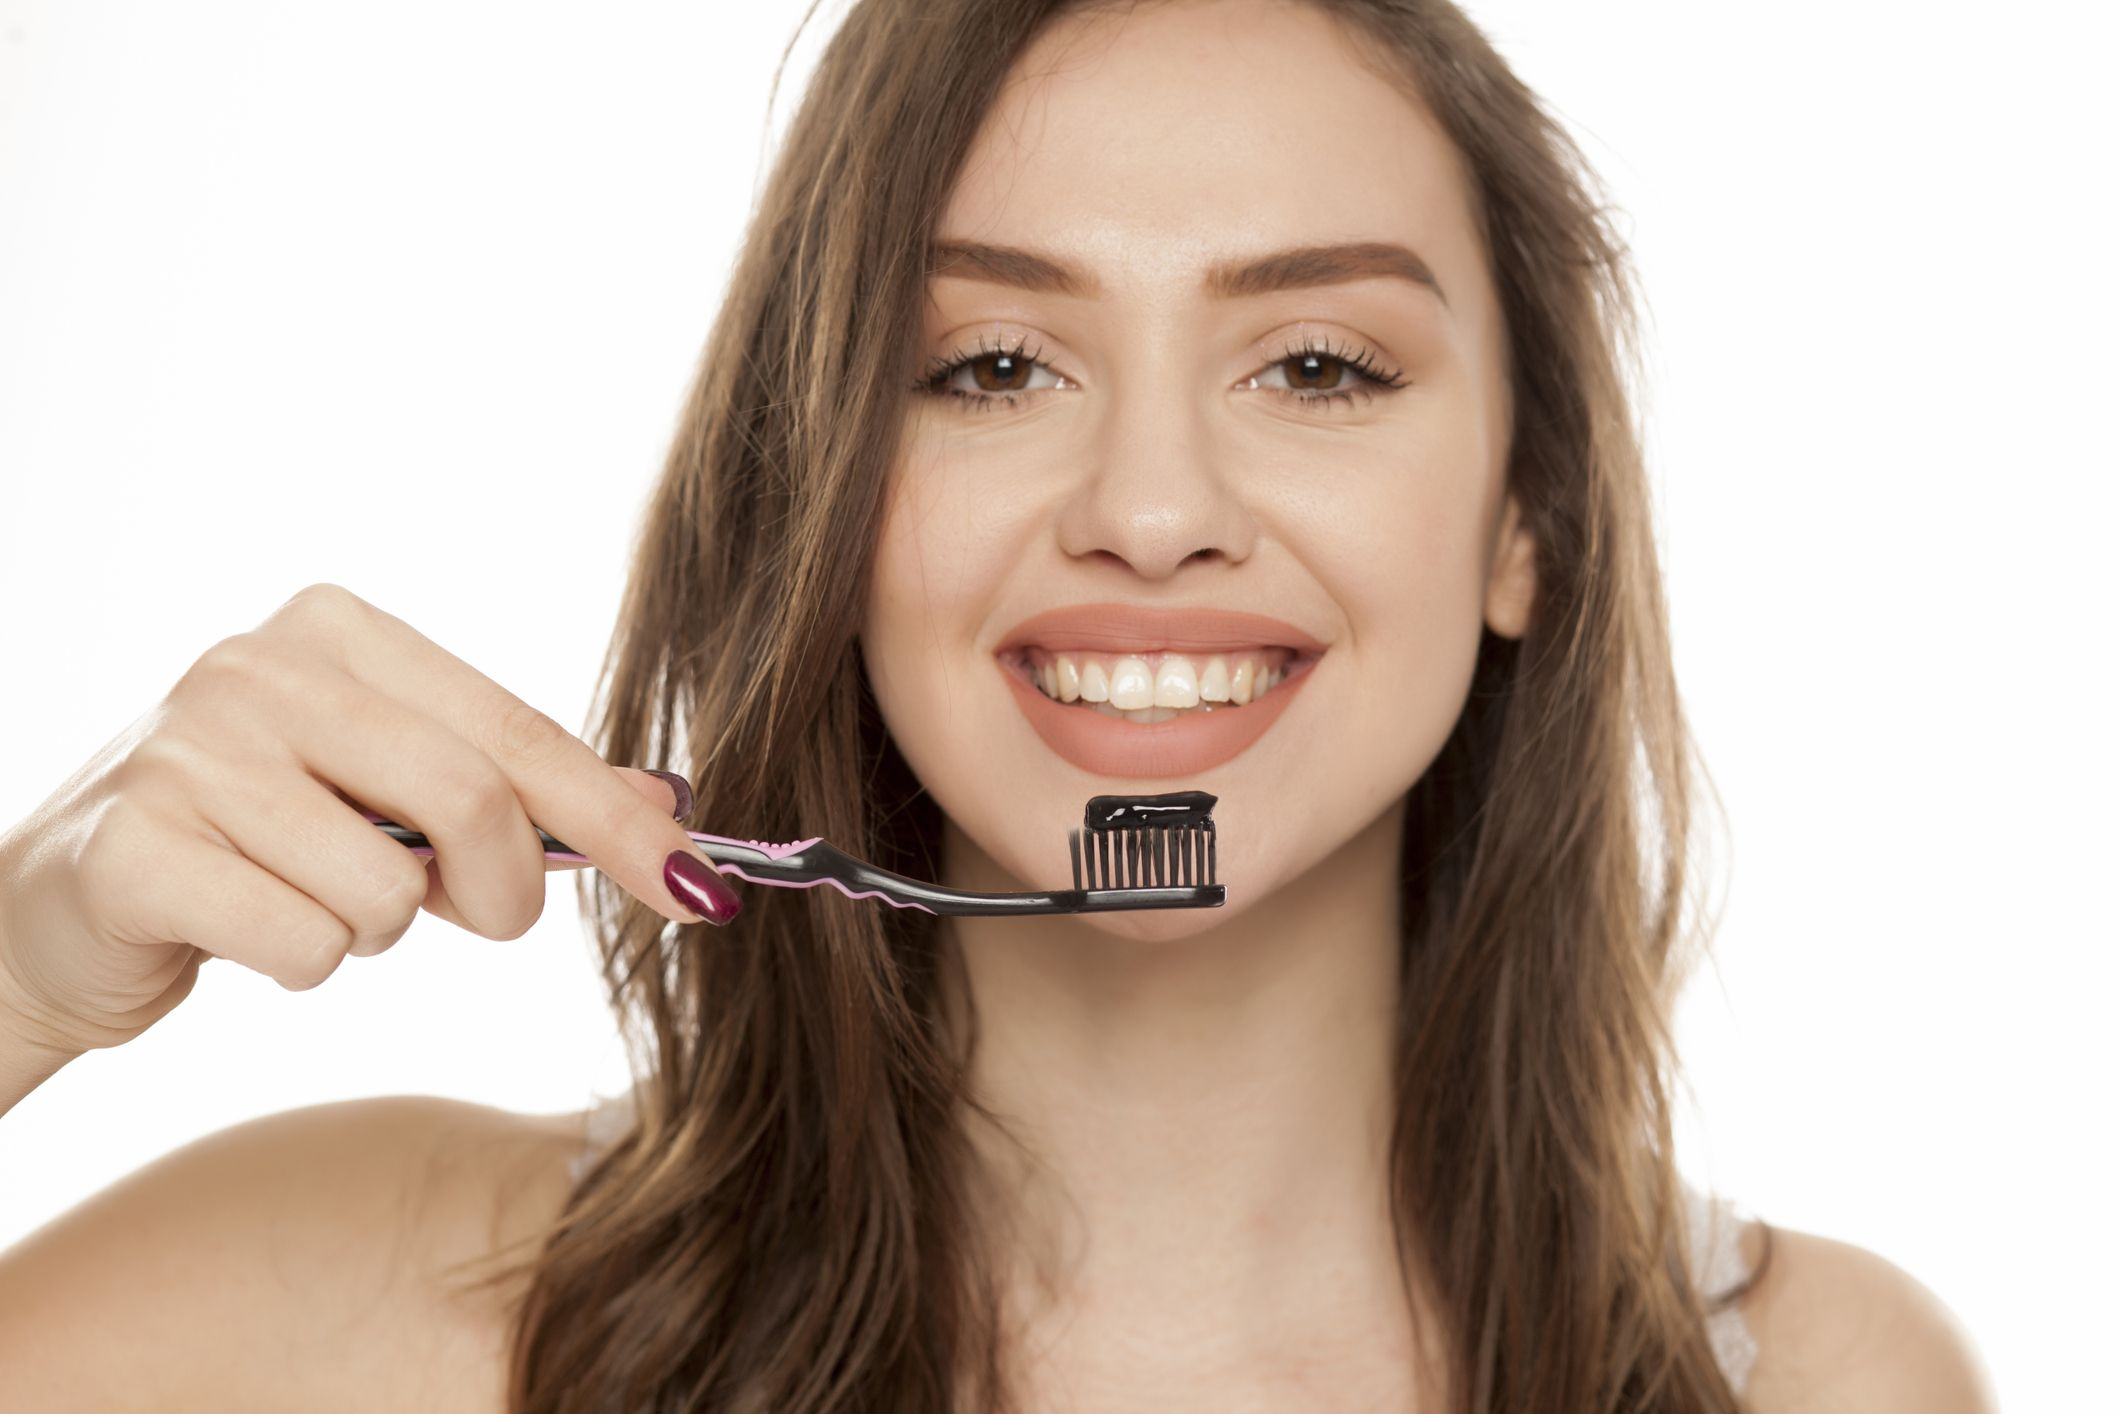 Activated Charcoal Teeth Whitening Is It Safe And Does It Work